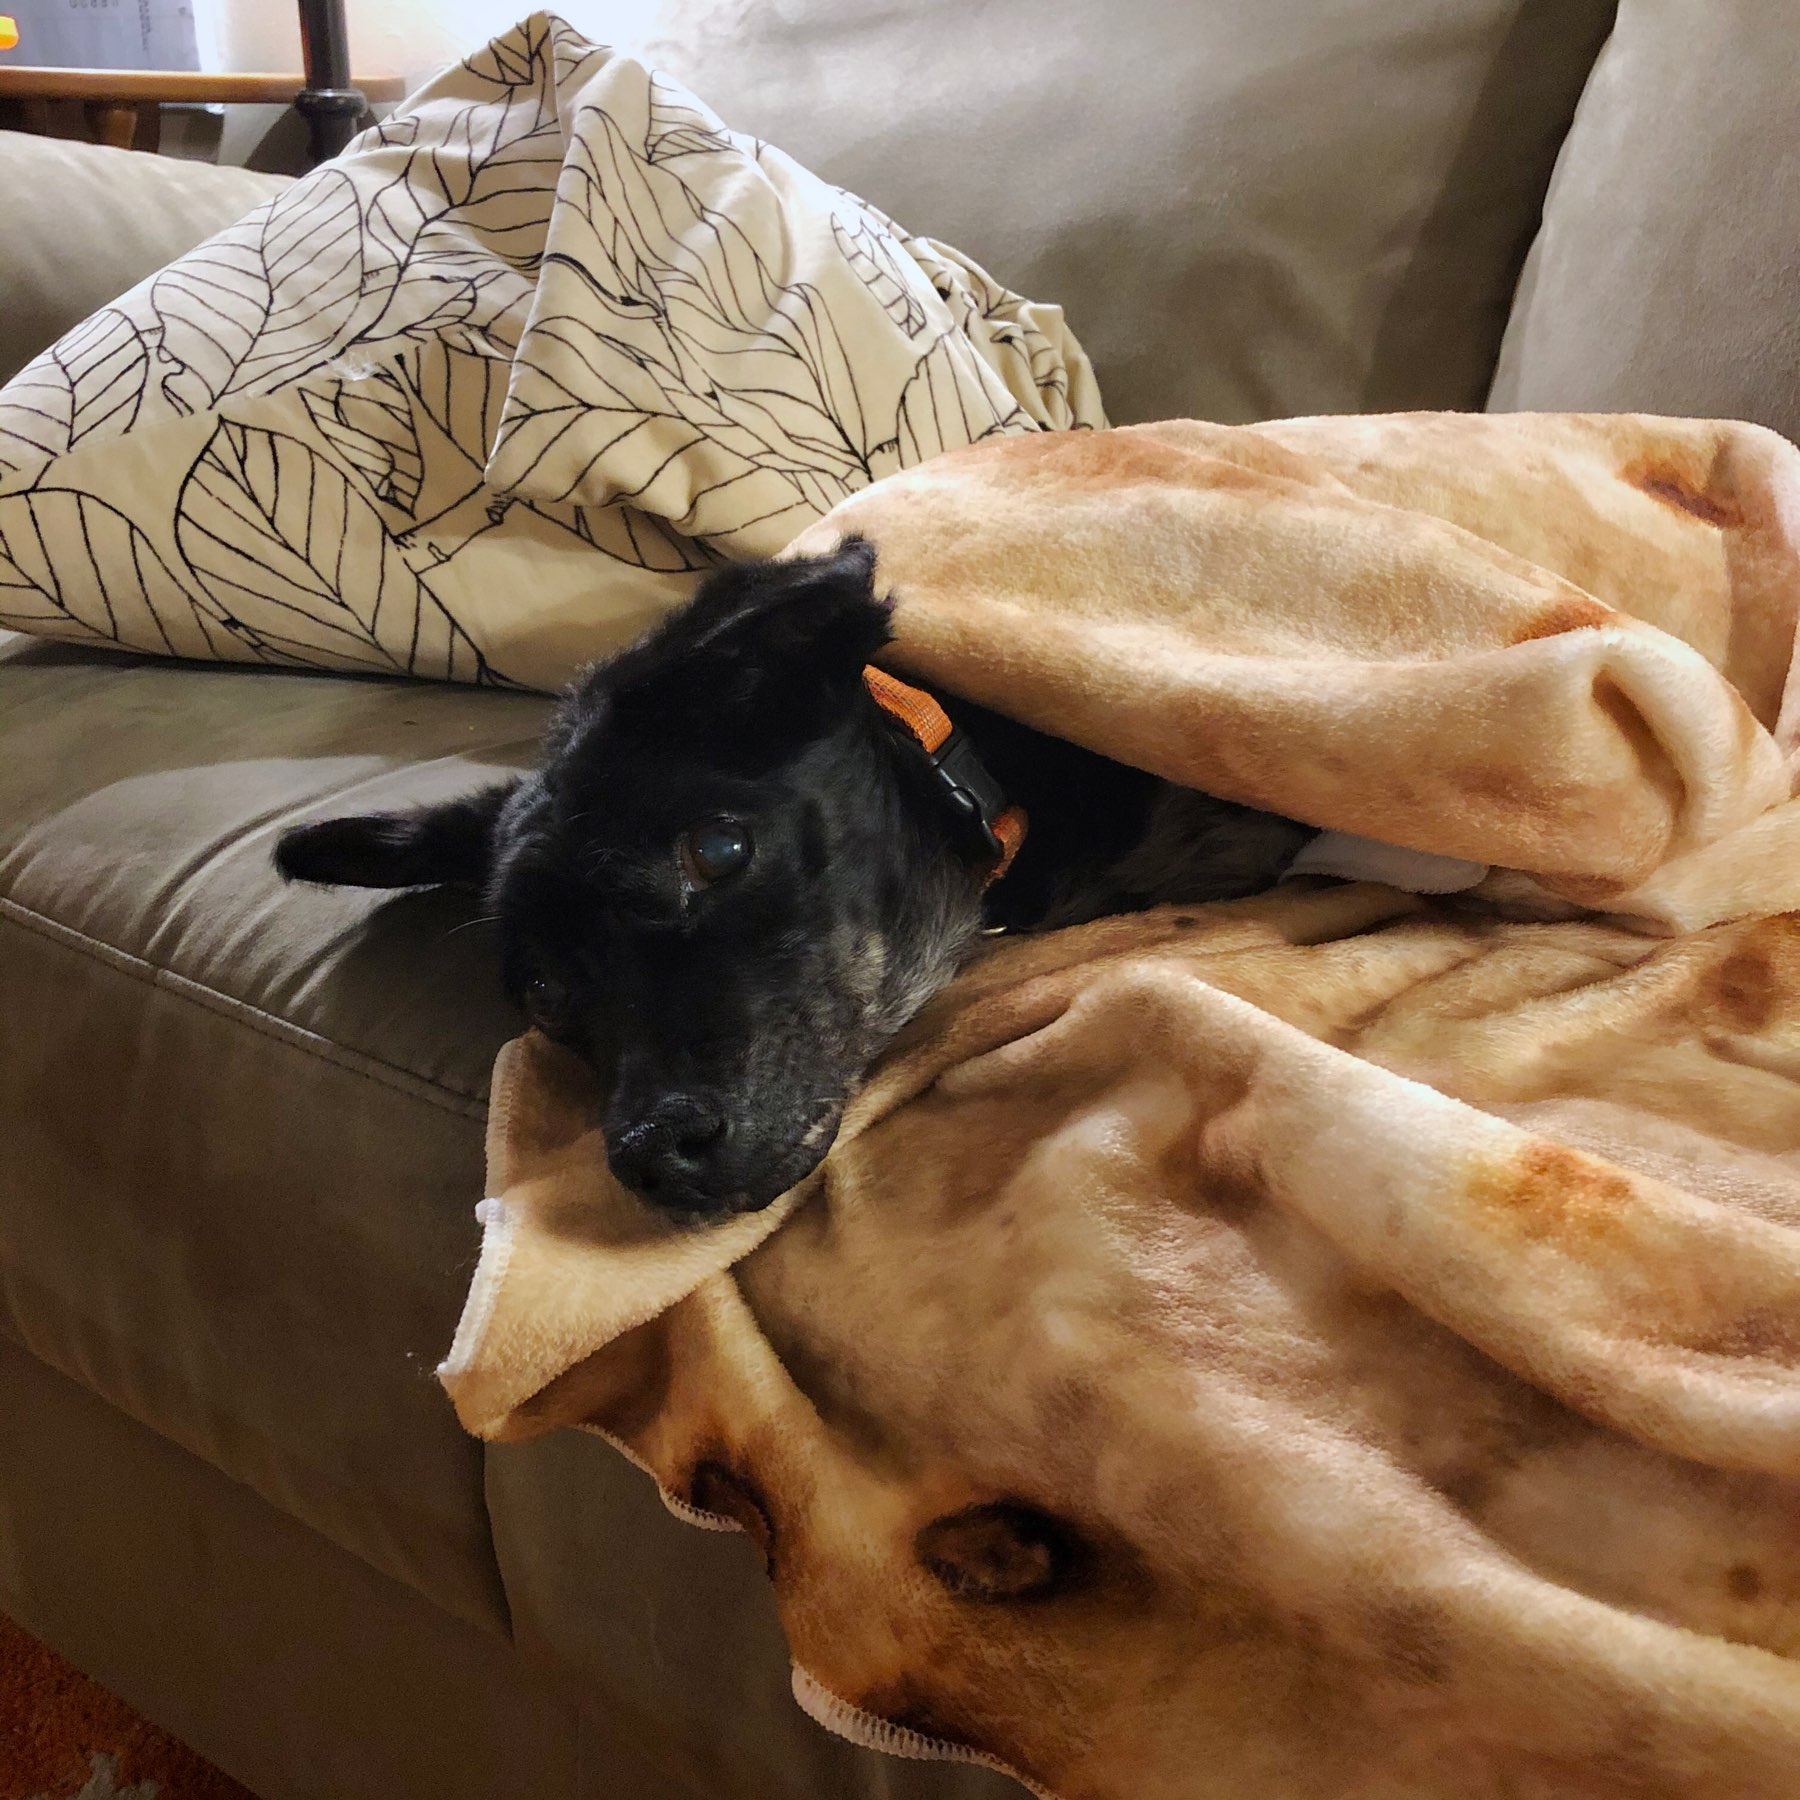 Dog in a blanket.